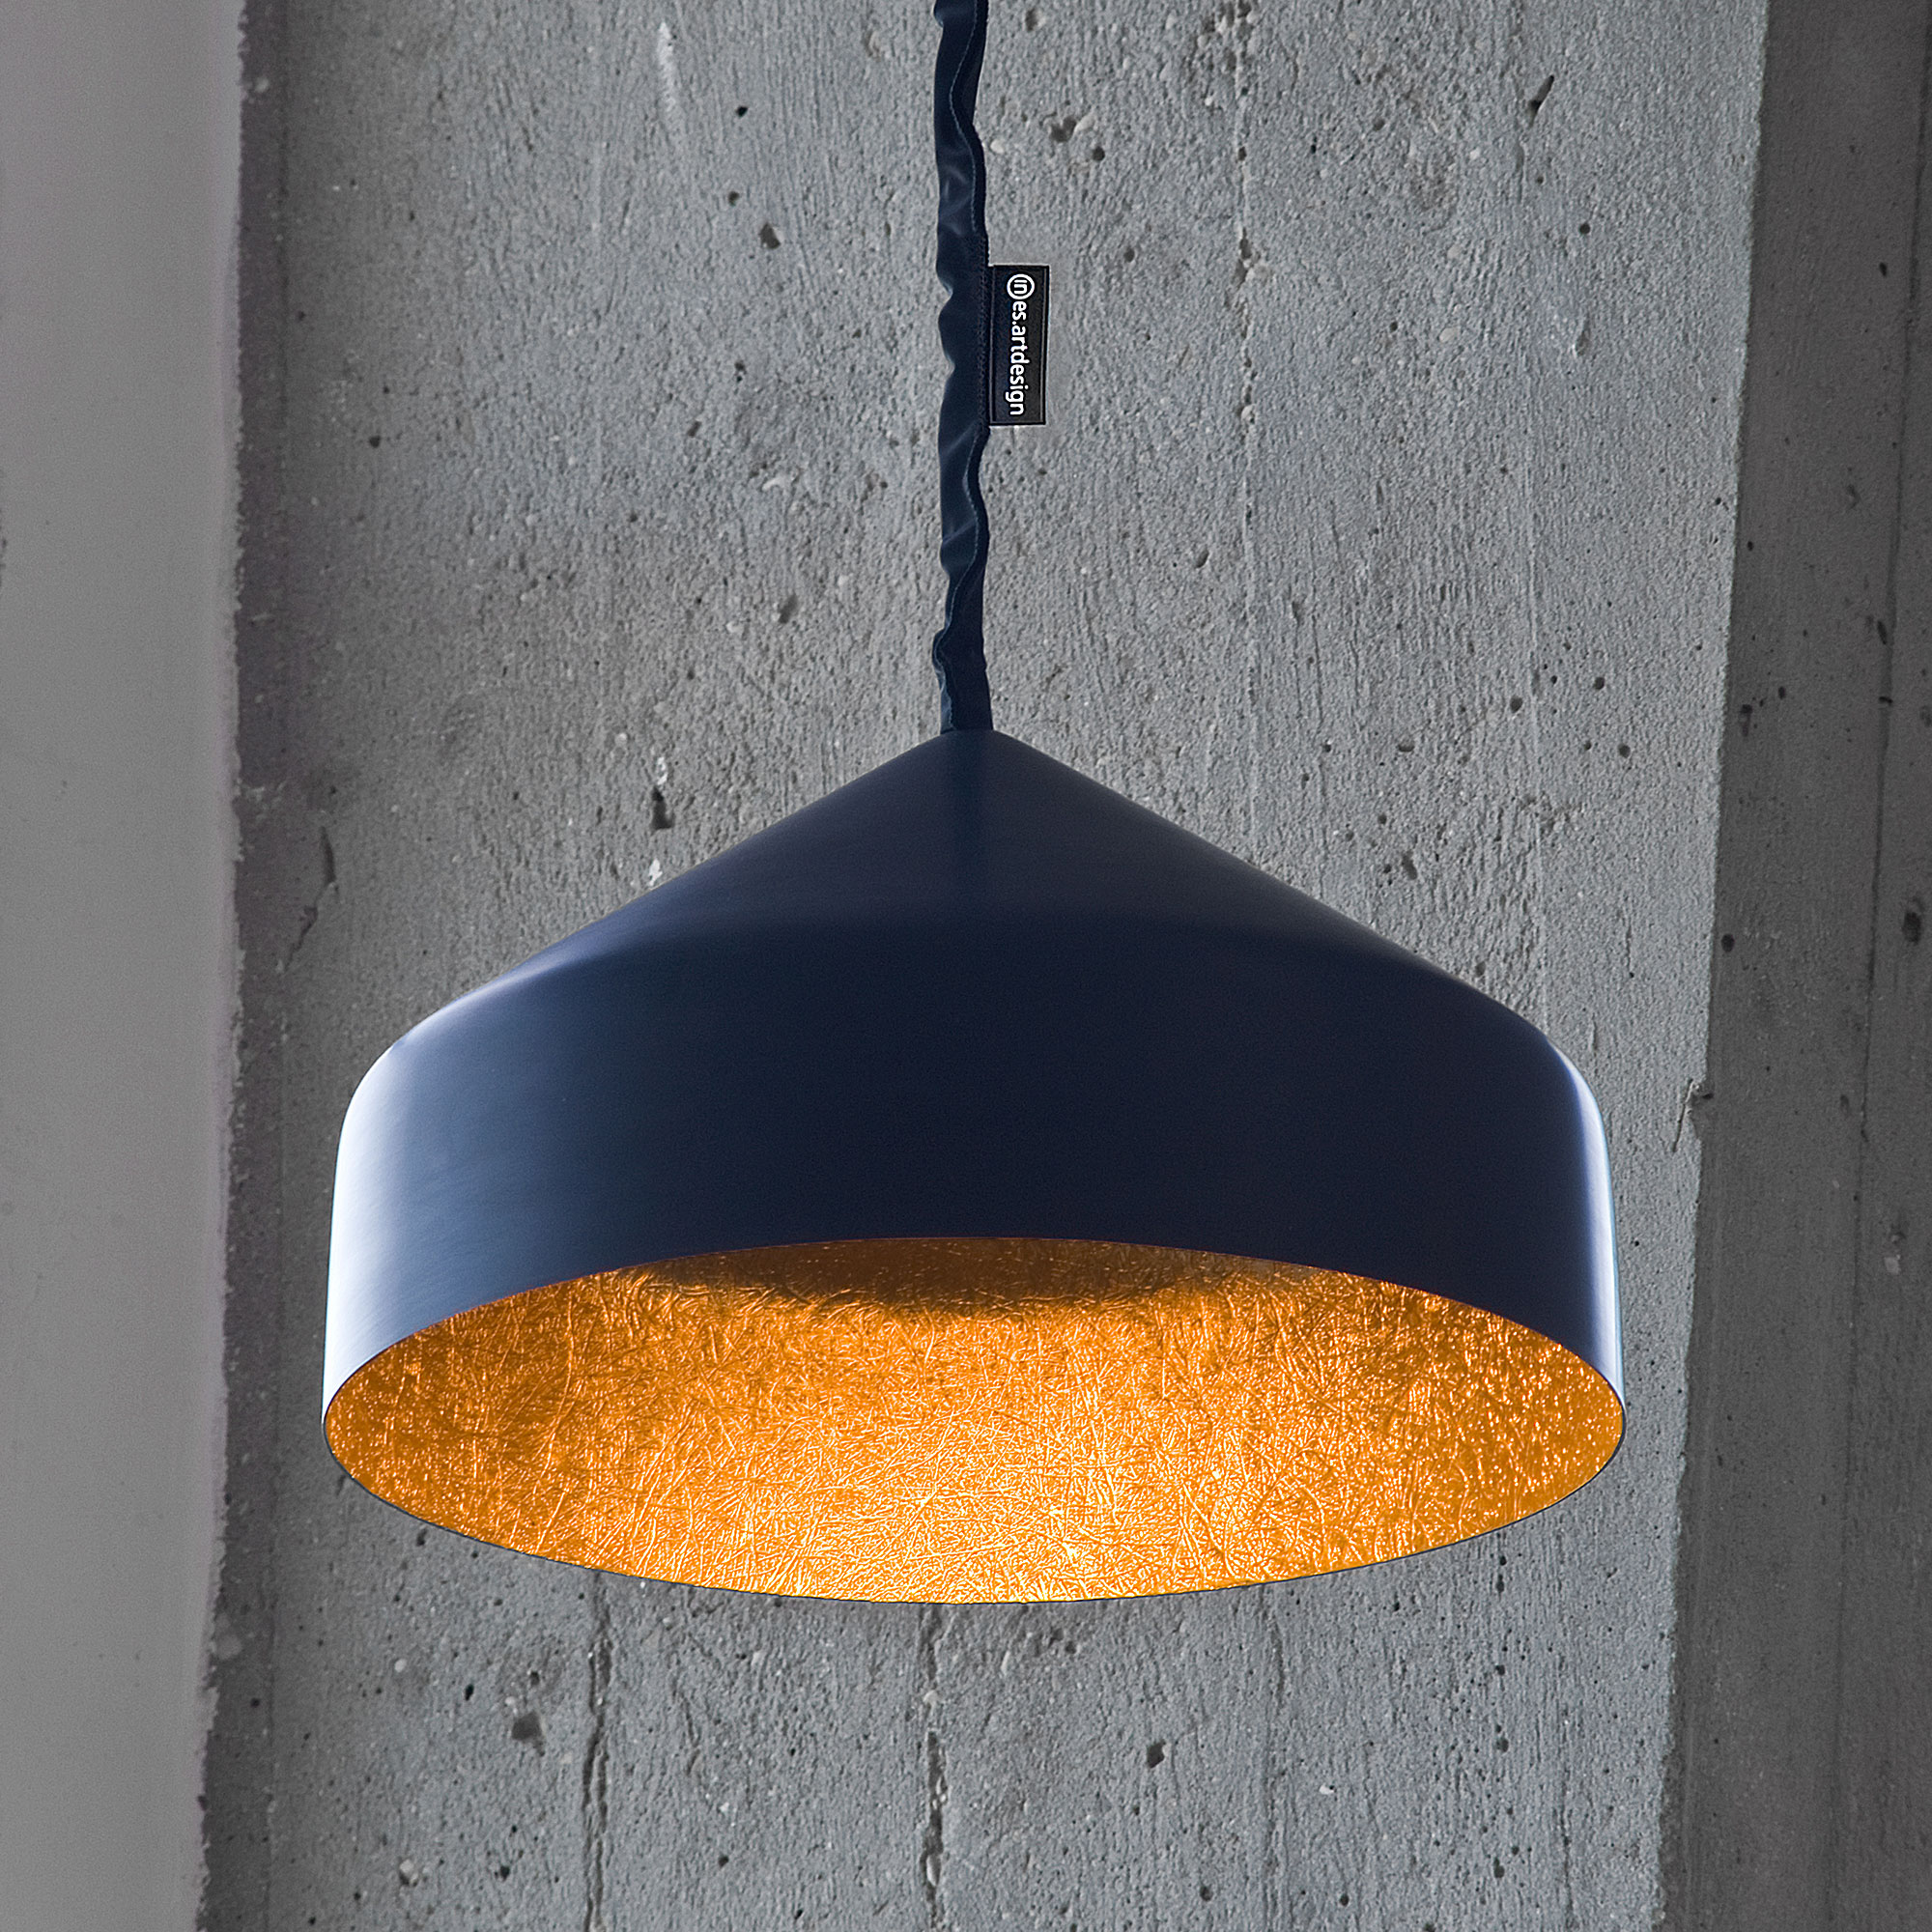 Cyrcus Lavagna Pendant Light | In-es Art Design